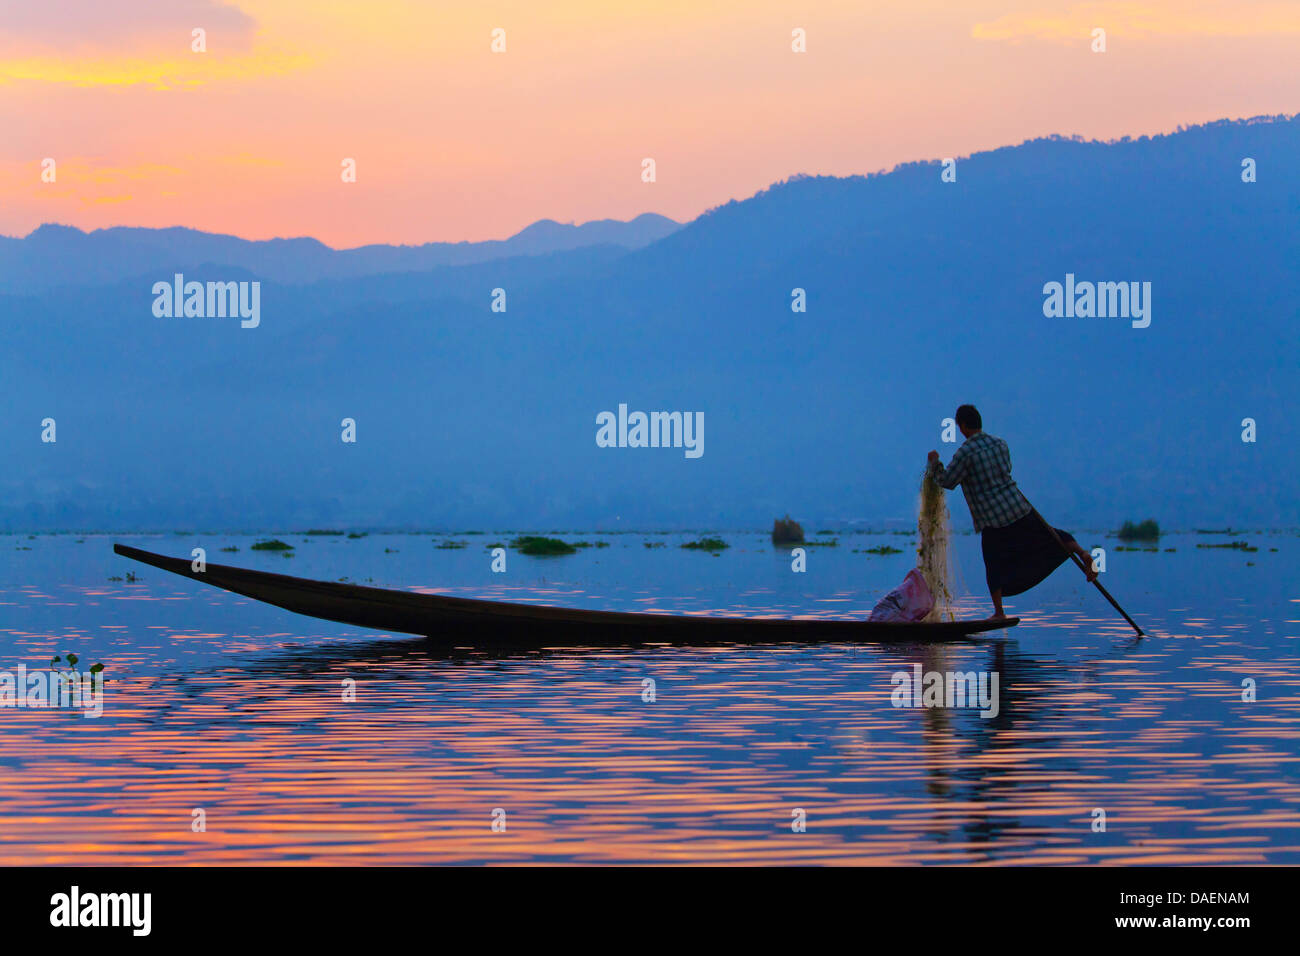 FISHING at dawn is still done in the traditonal way with small wooden boats, fishing nets and leg rowing, Inle Lake, - Stock Image